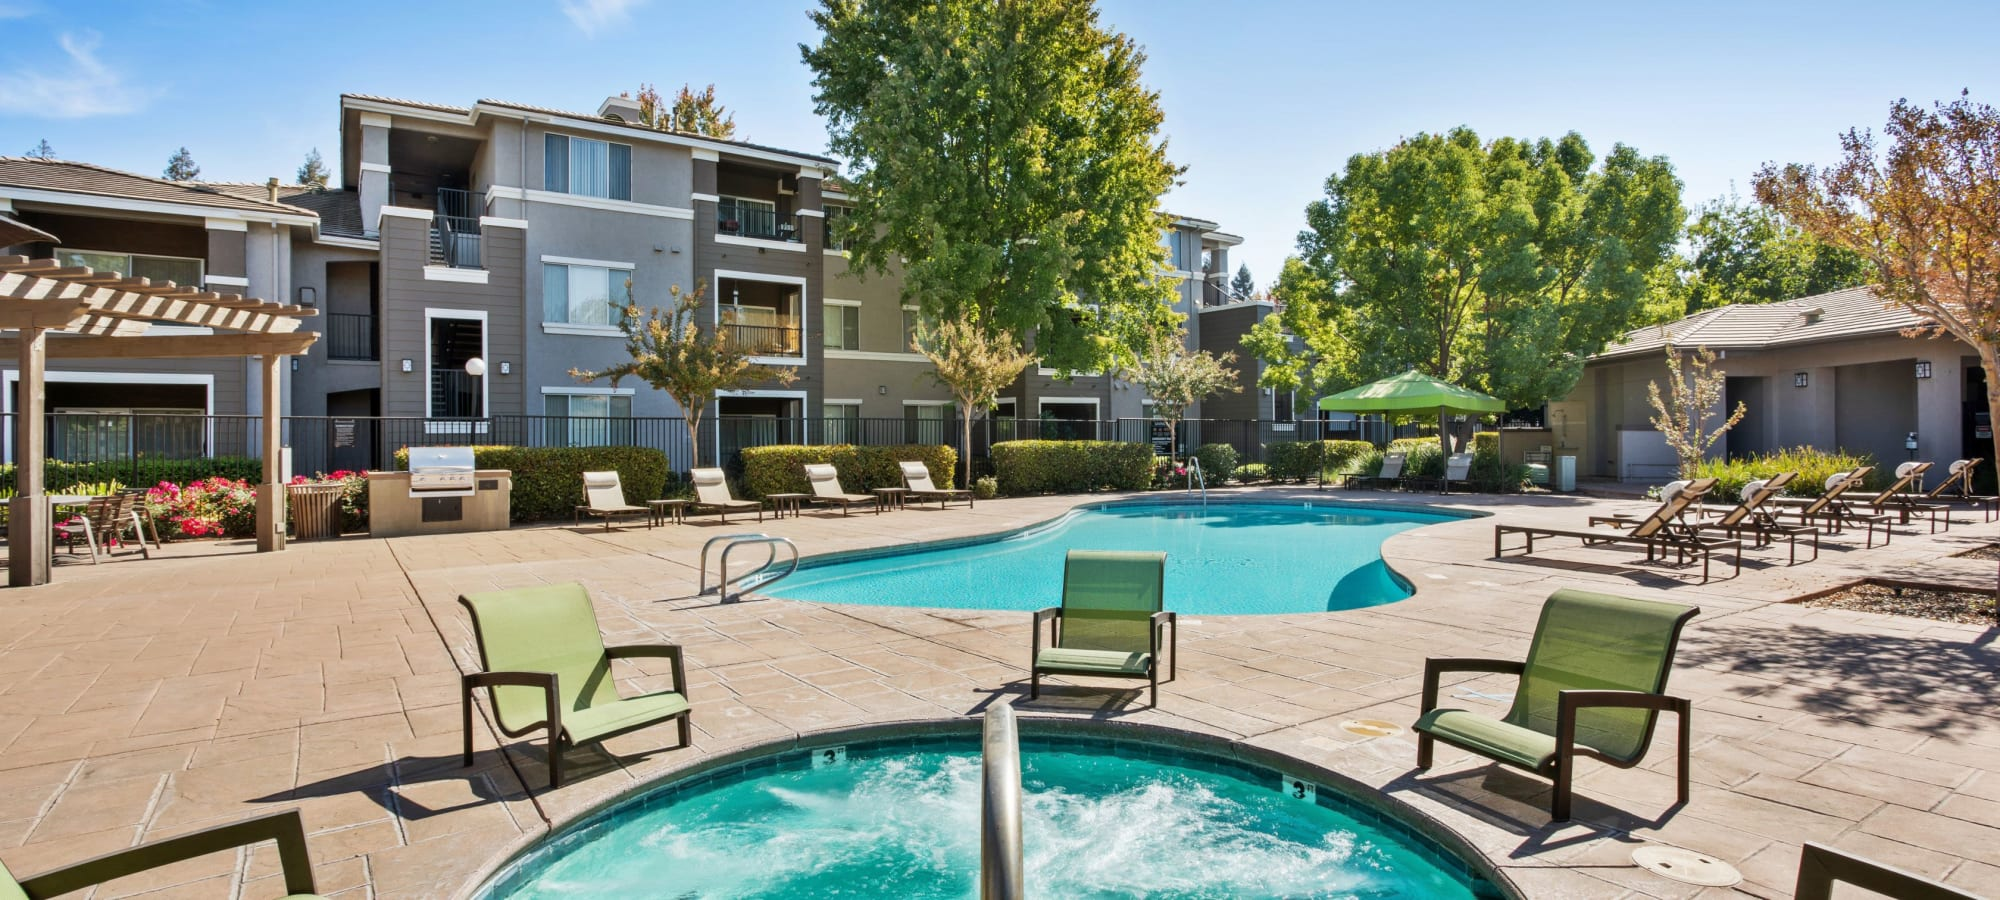 Miramonte and Trovas Apartments in Sacramento, California